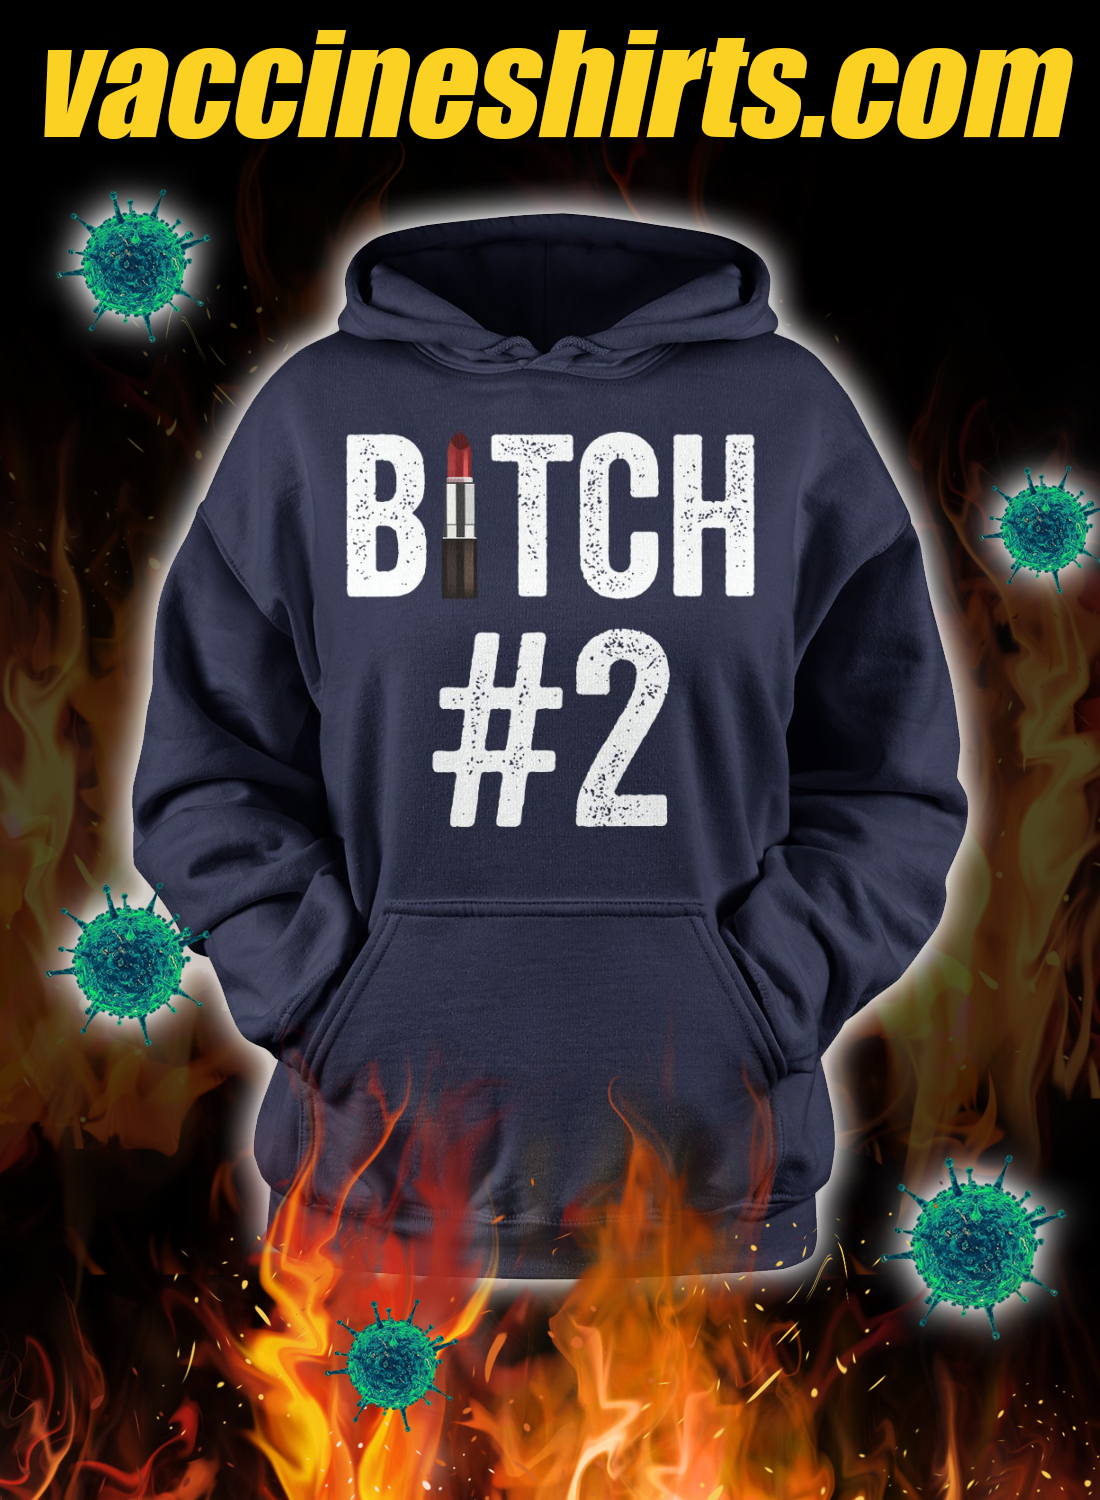 Bitch #1 Bitch #2 Bitch #3 matching friend hoodie 1